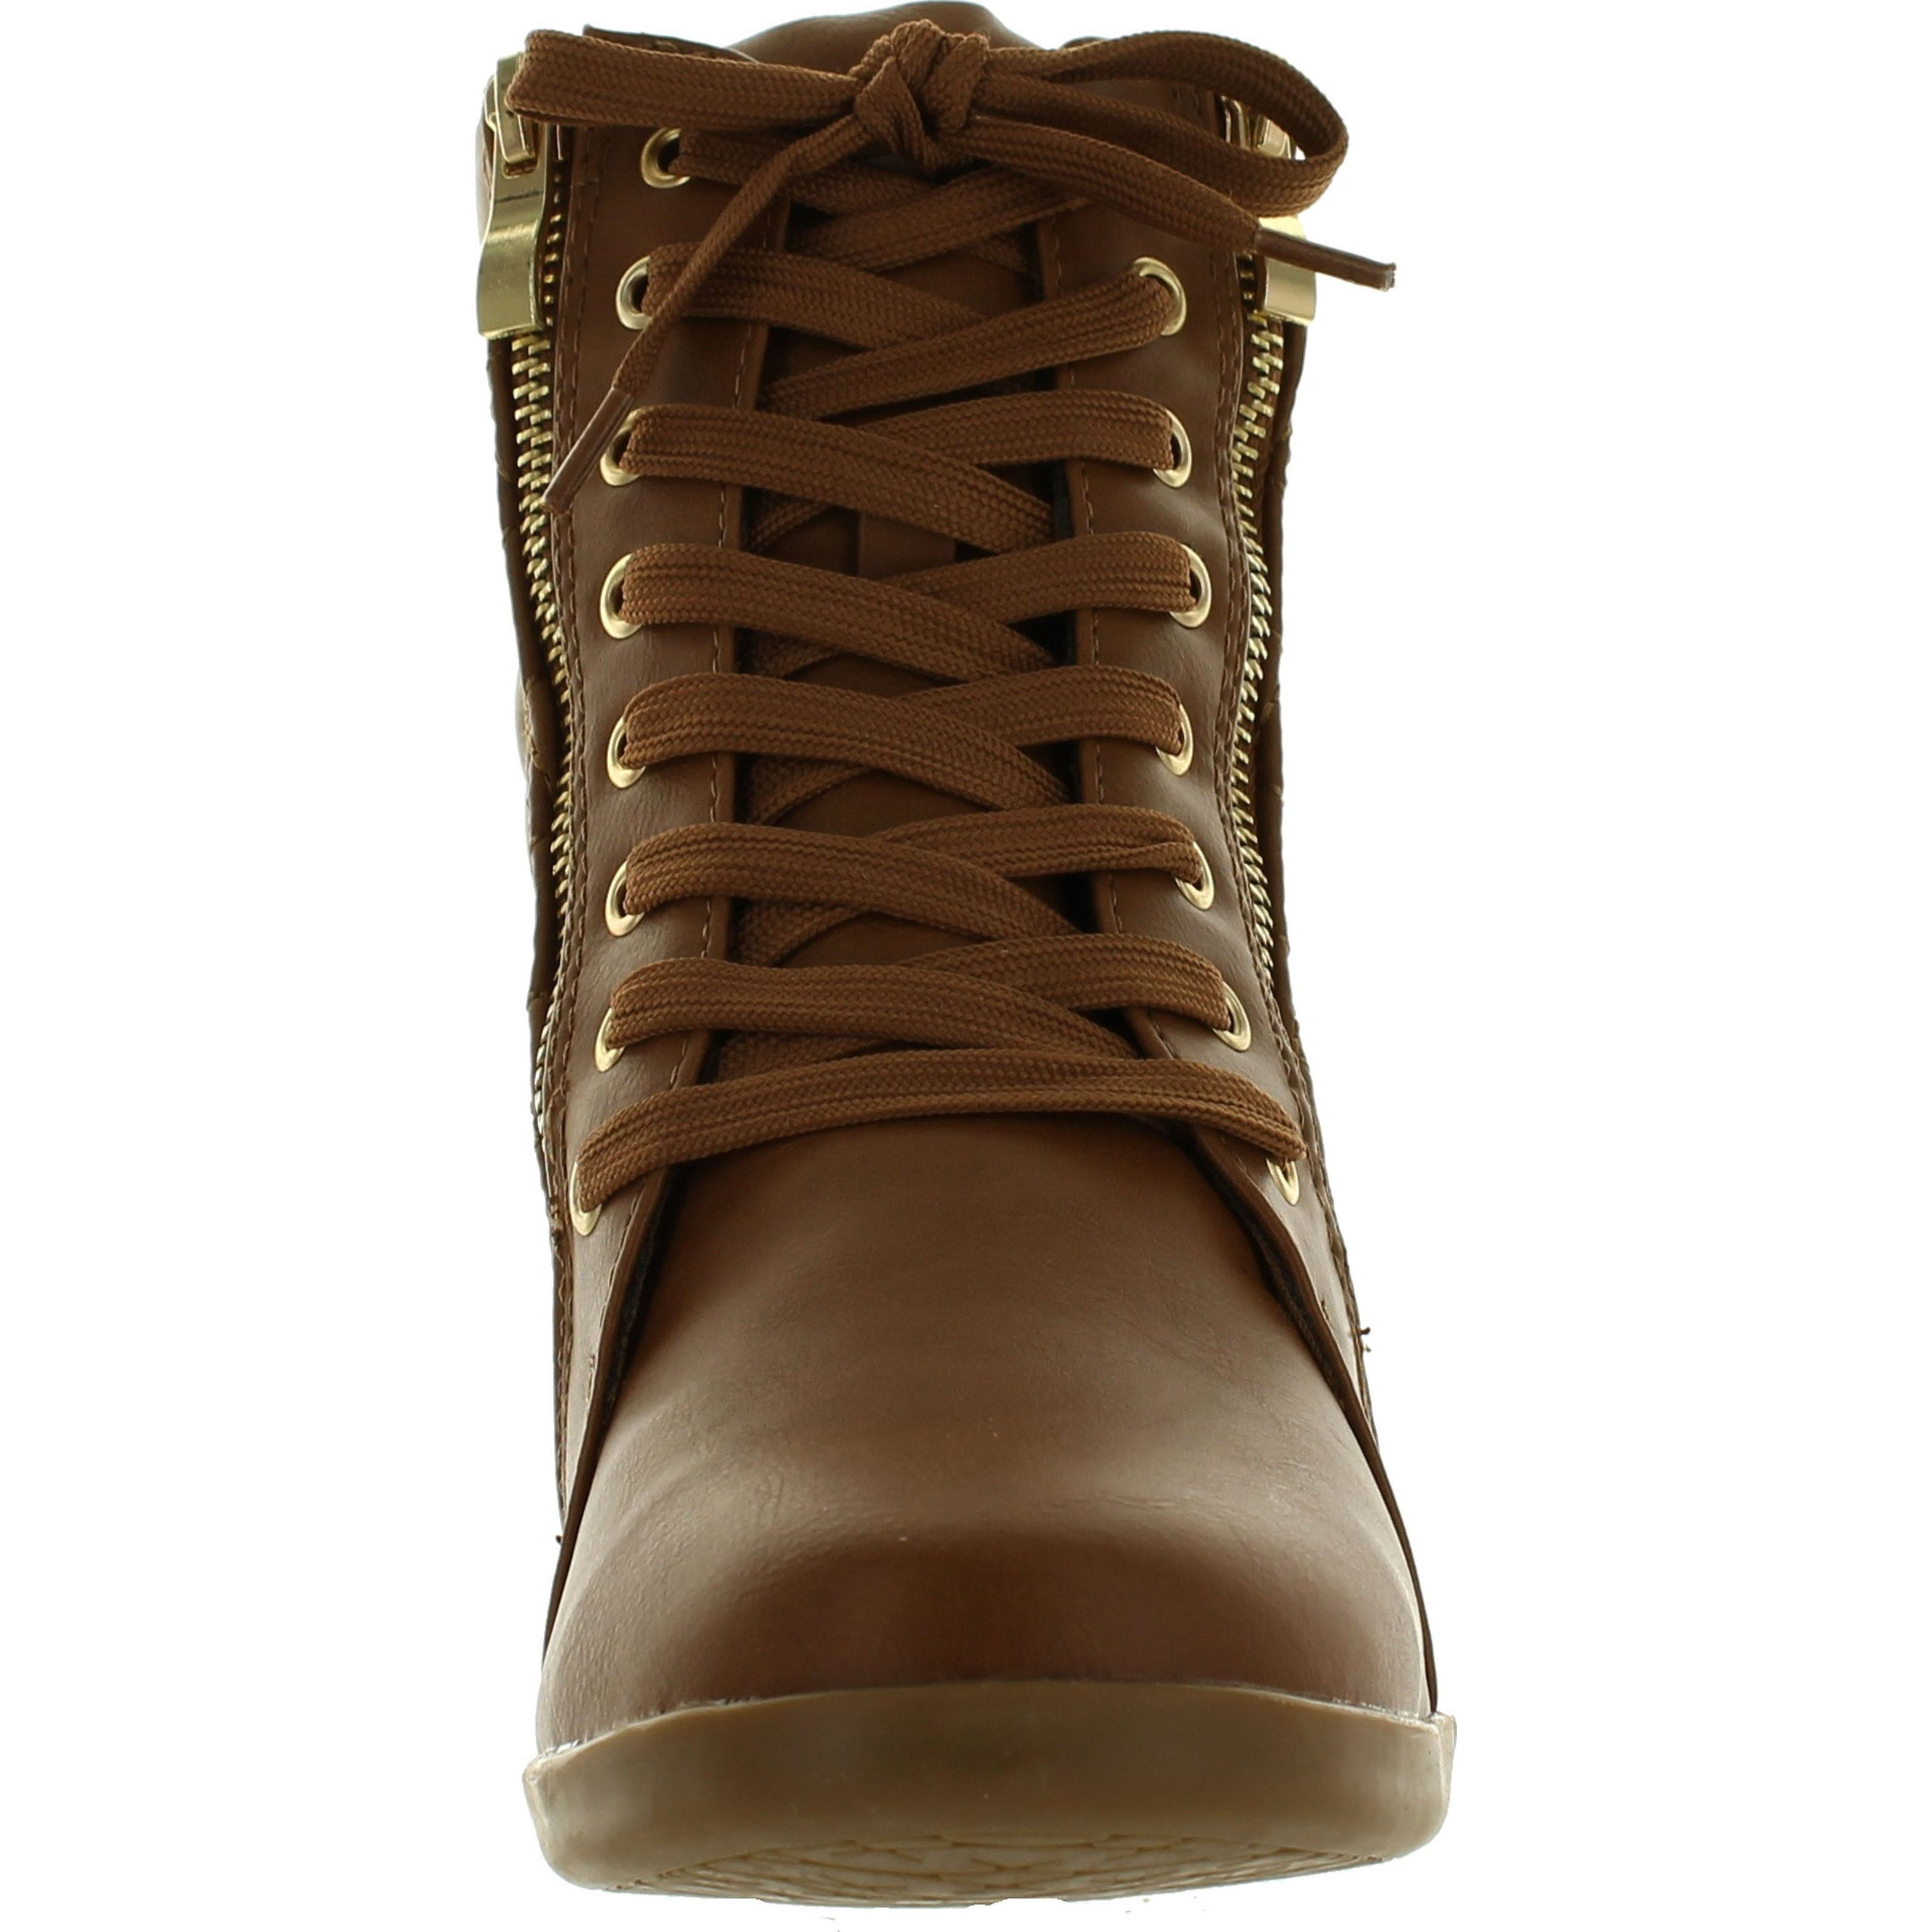 95dfc242e20 Shop Forever Link Womens Fashion Gladys-25 Leather Pu Lace Up Quilted Ankle  High Wedge Sneakers - Free Shipping On Orders Over  45 - Overstock -  14381470